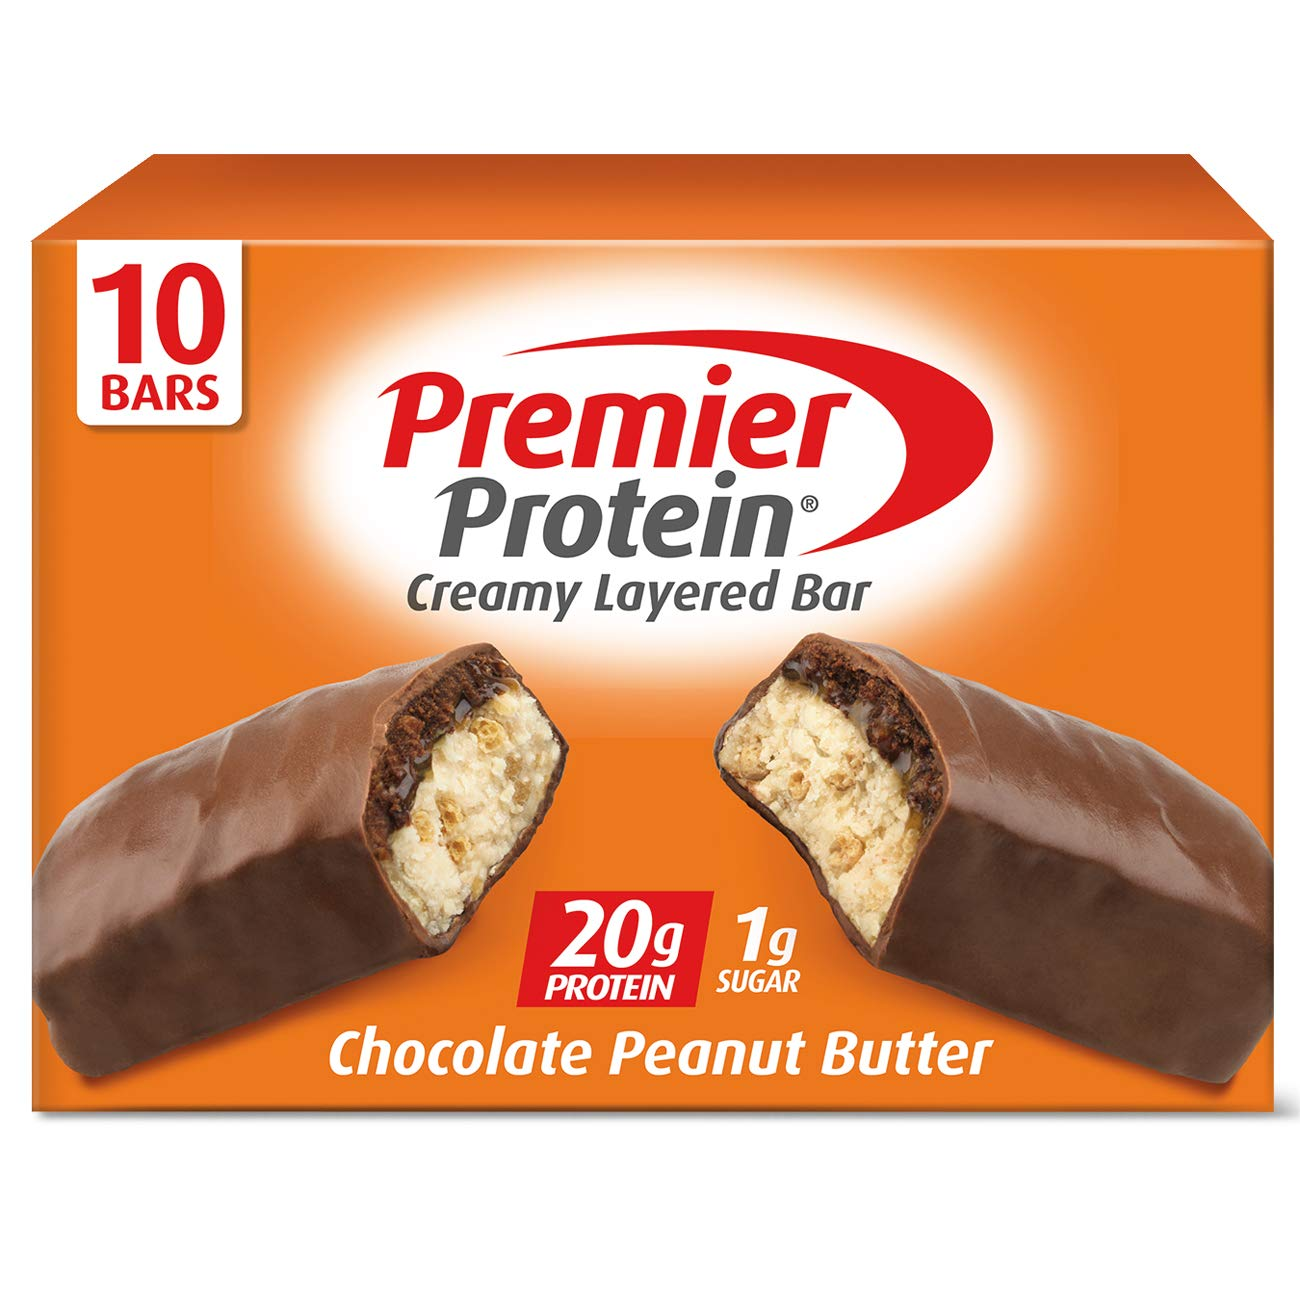 Premier Protein 20g Protein bar, Chocolate Peanut Butter, 2.08 Oz, (10Count) by Premier Nutrition Protein